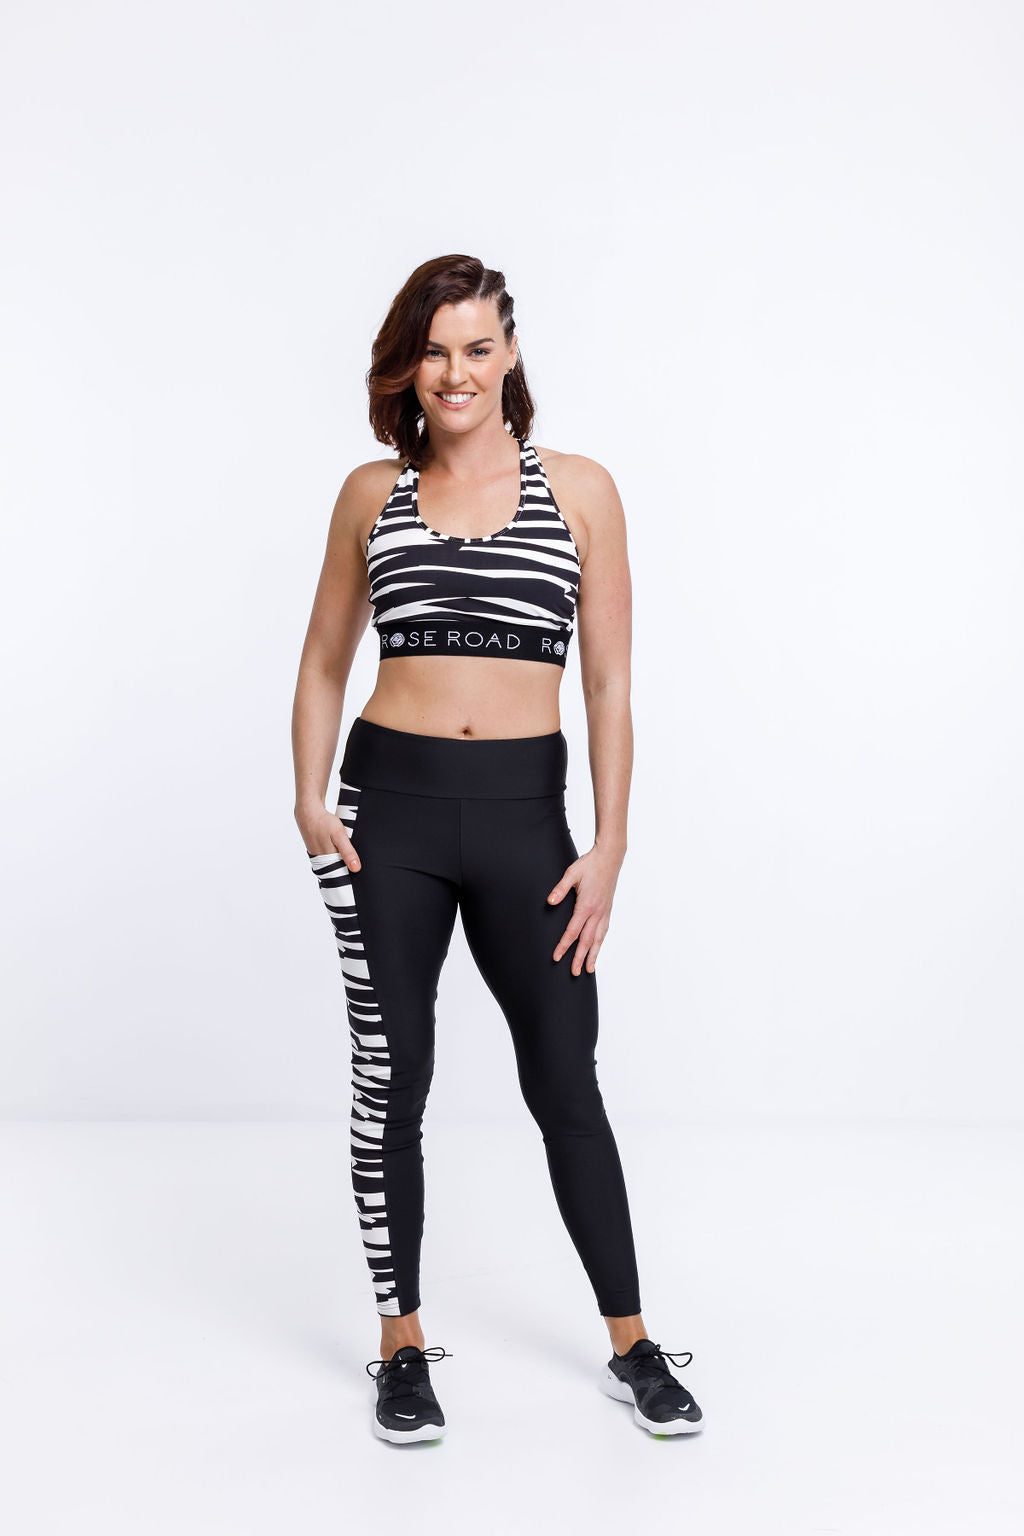 POCKET LEGGING - Black with White Offbeat Stripe